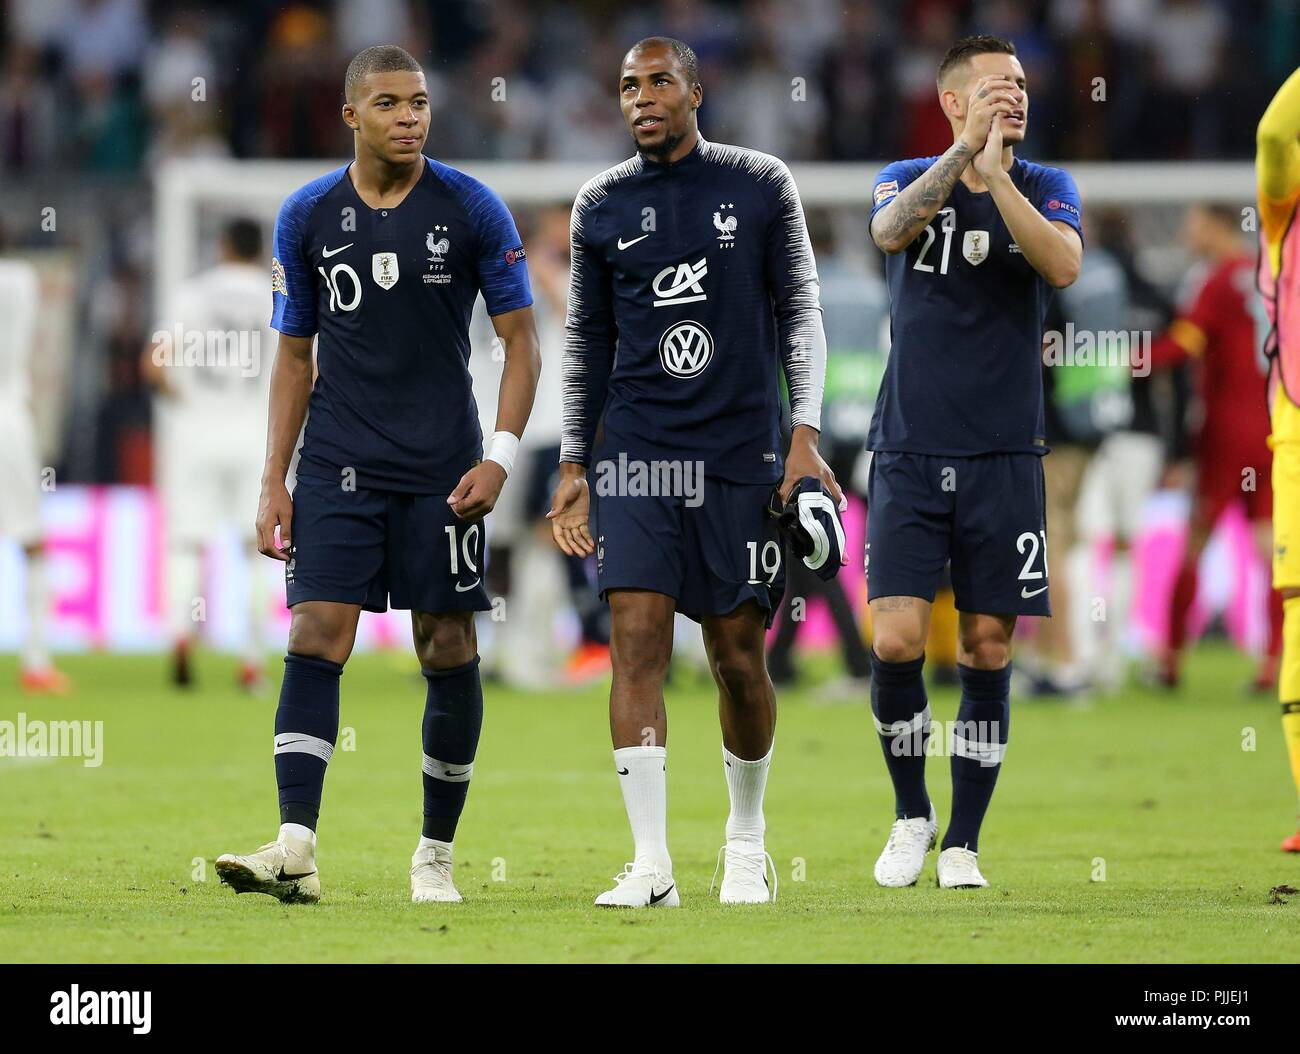 firo: 06.09.2018 Fuvuball, Football, National Team, Germany, UEFA, Nations League, Division A, League A, GER, Germany - FRA, France Kylian Mbappv © , Djibril Sidibv © , France, full figure, | usage worldwide - Stock Image